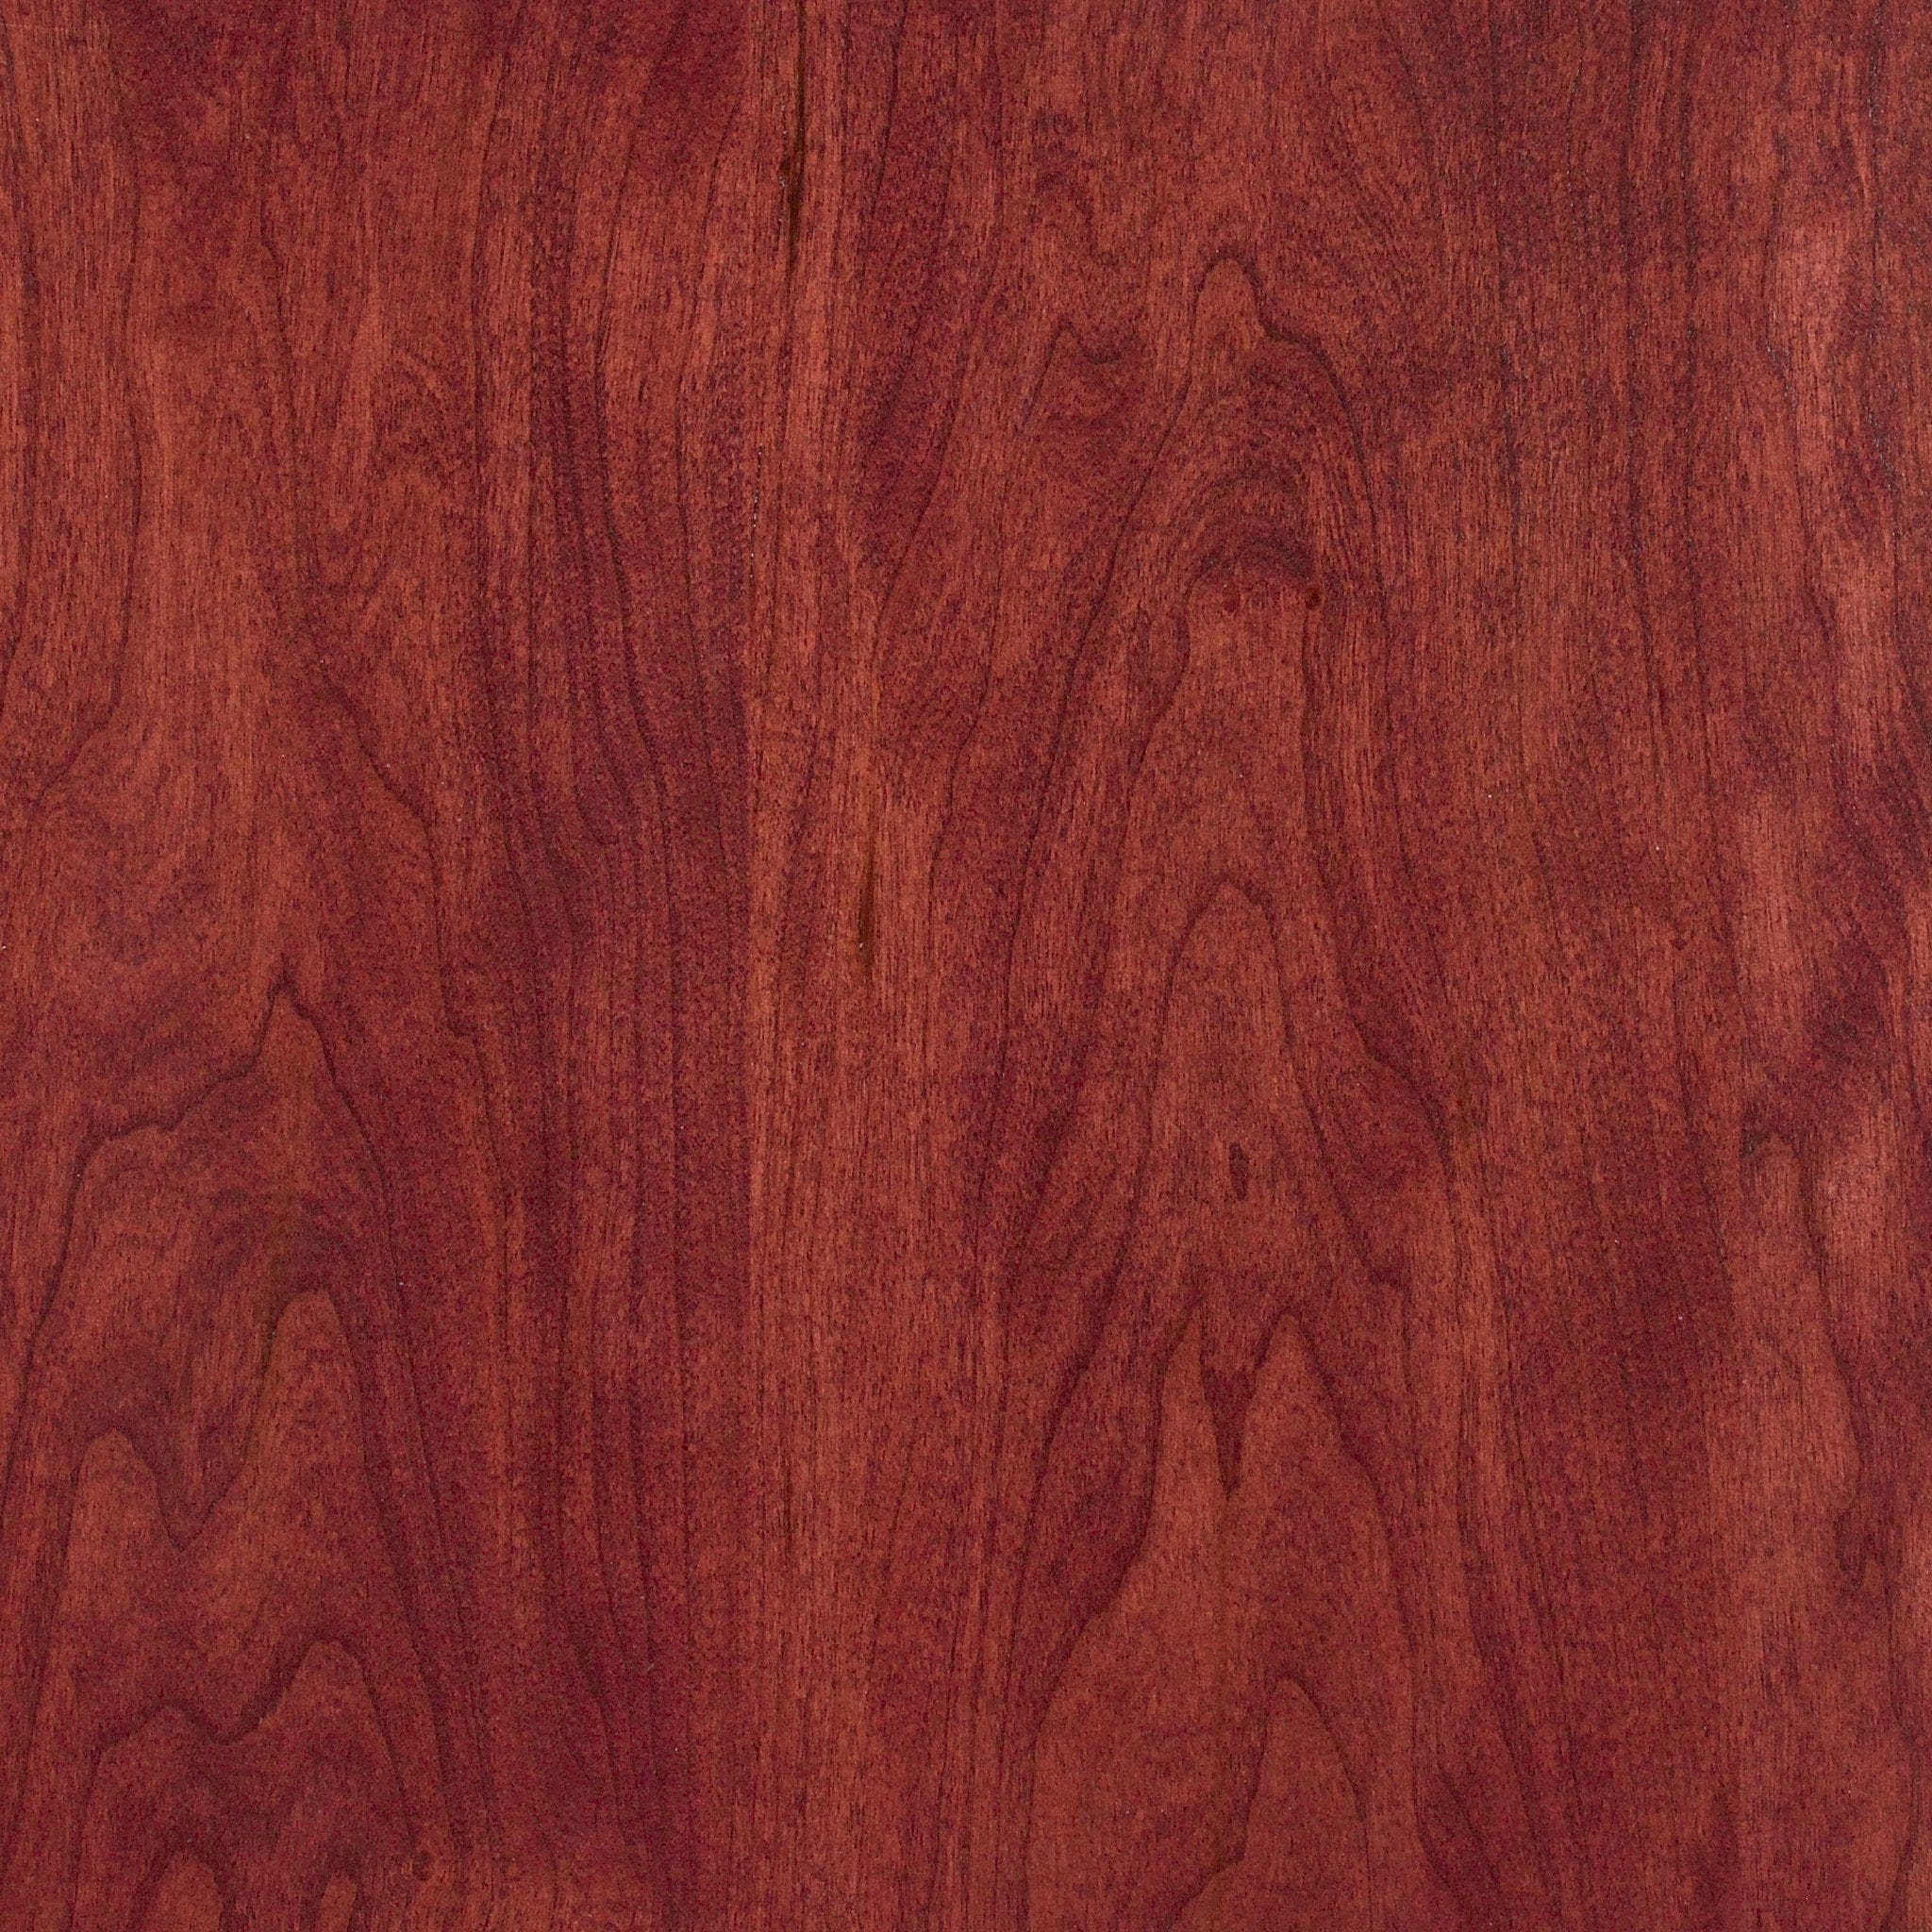 Cherry Wood: Cherry Wood Images